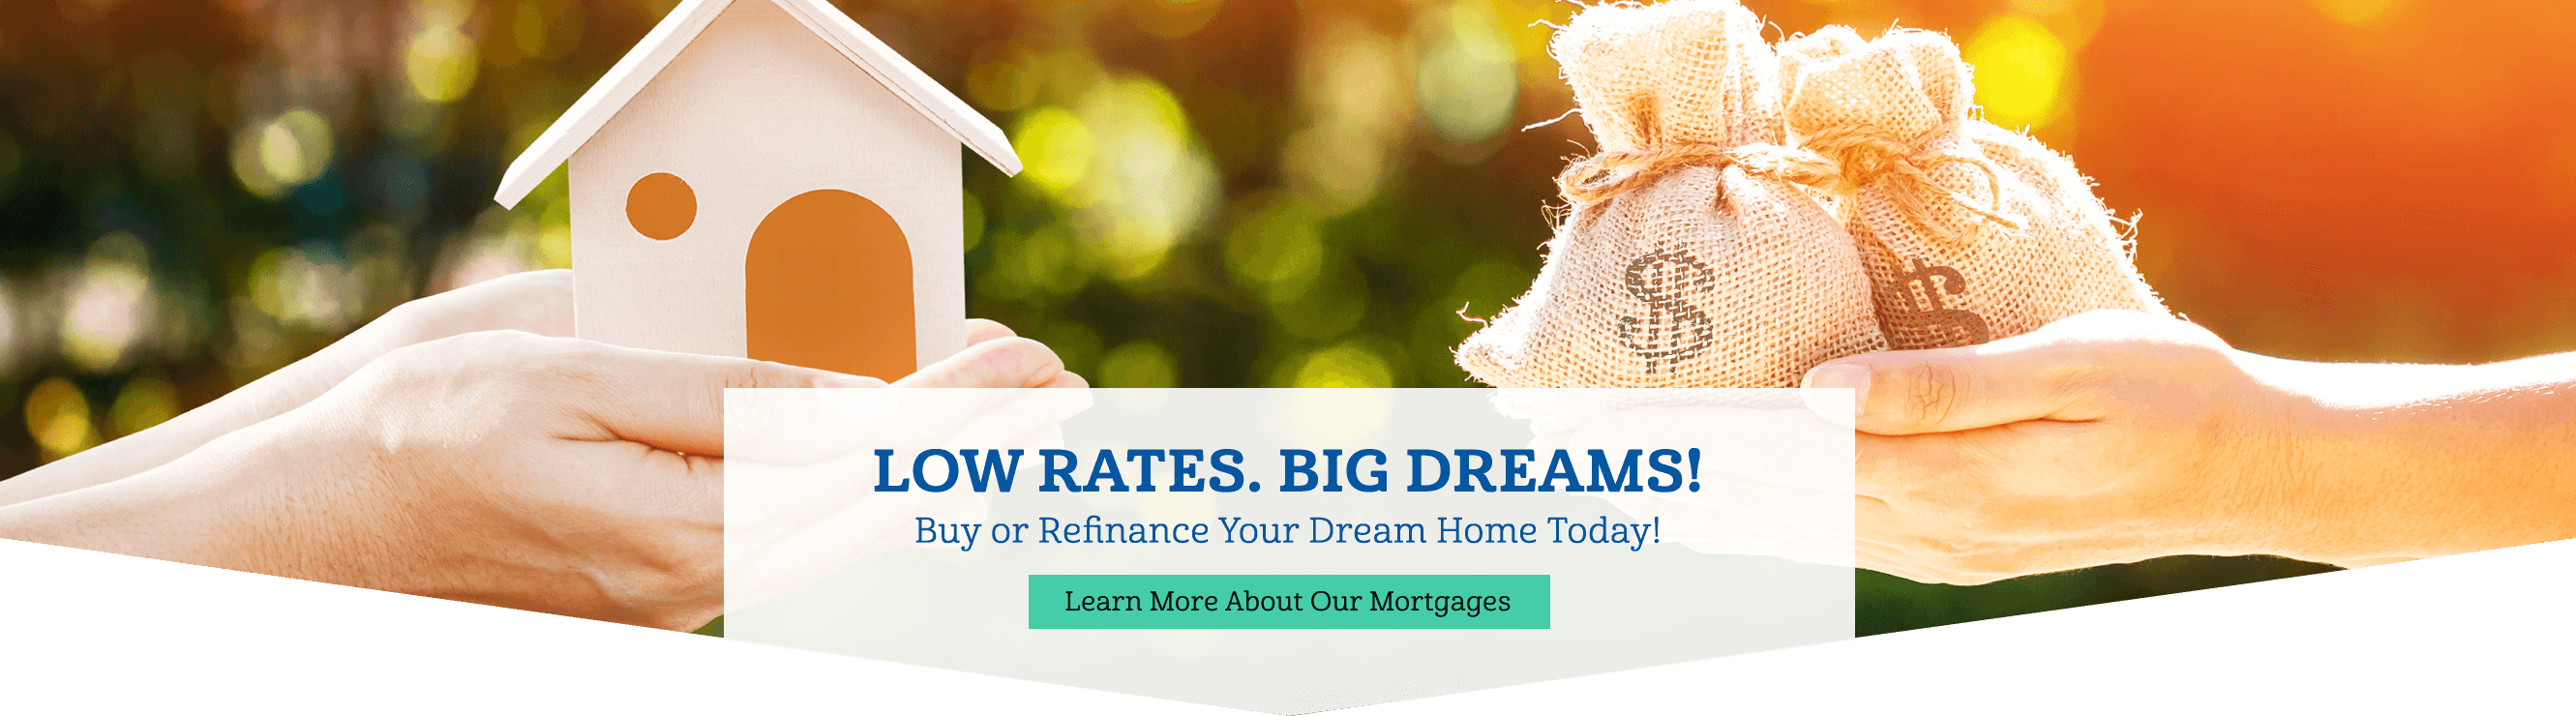 Low Rates Big Dreams: Buy or refinance your dream home today!